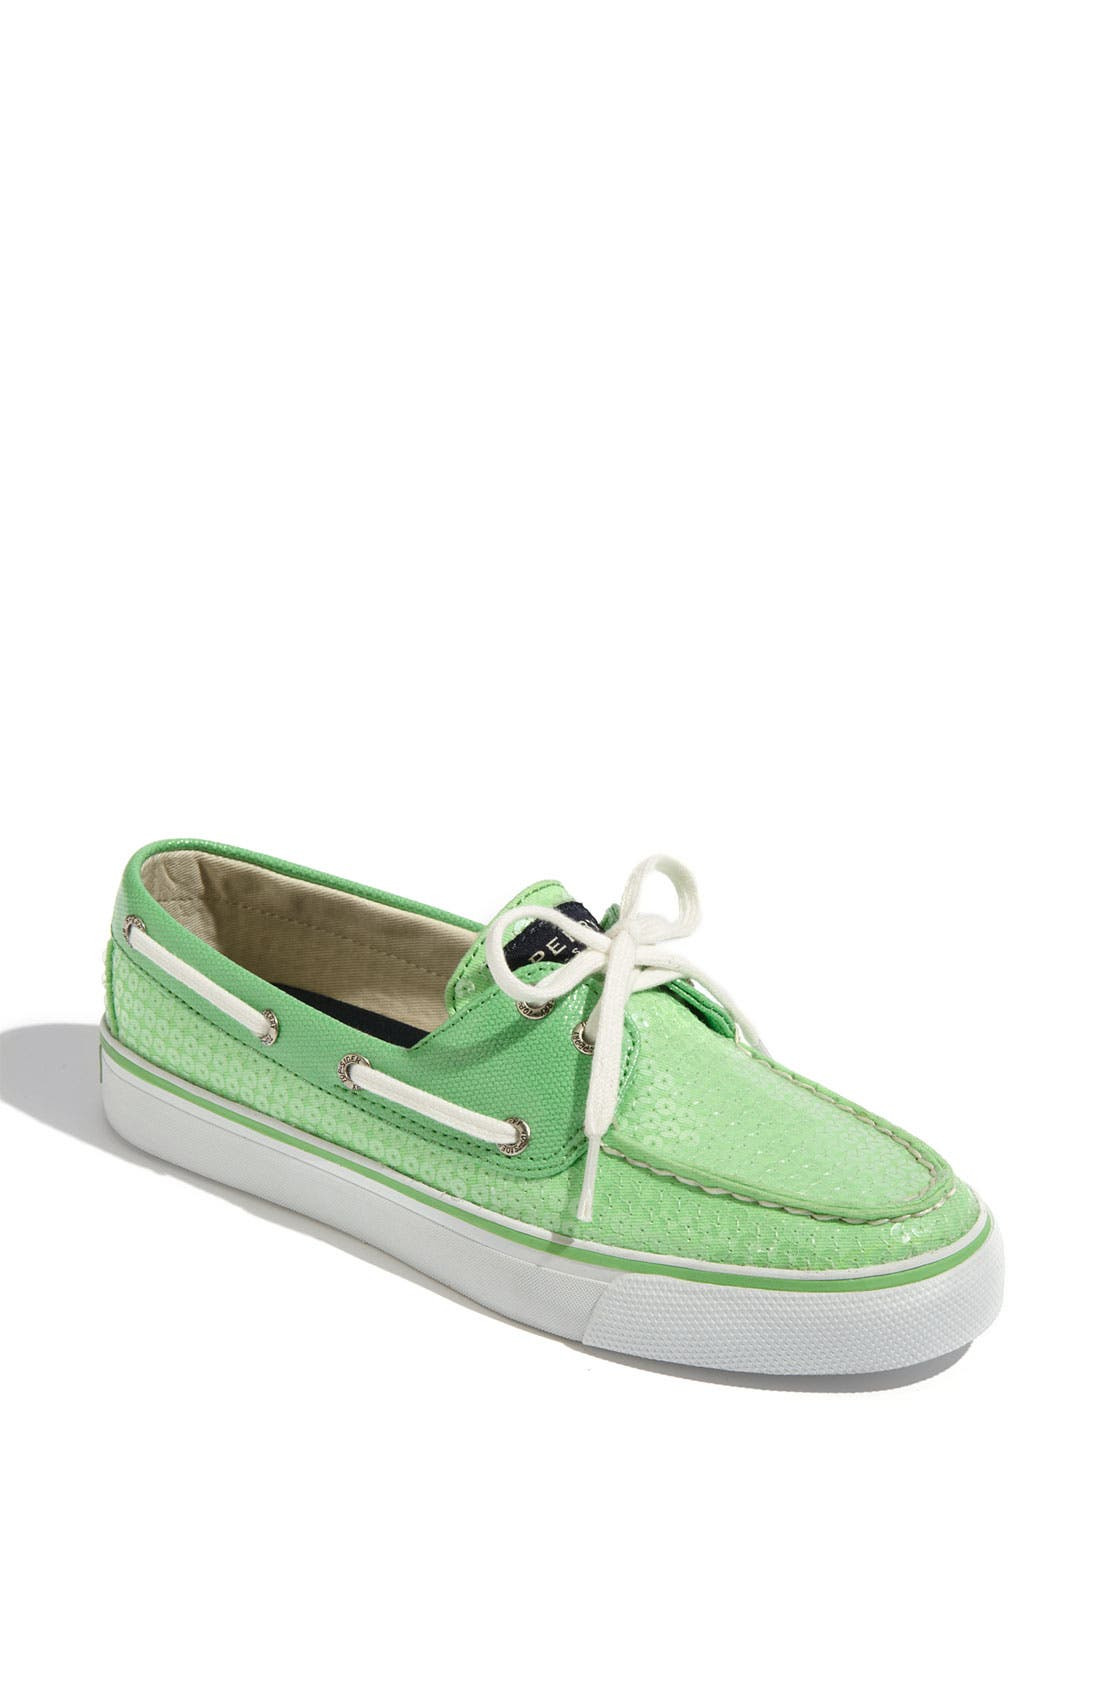 Top-Sider<sup>®</sup> 'Bahama' Sequined Boat Shoe,                             Main thumbnail 20, color,